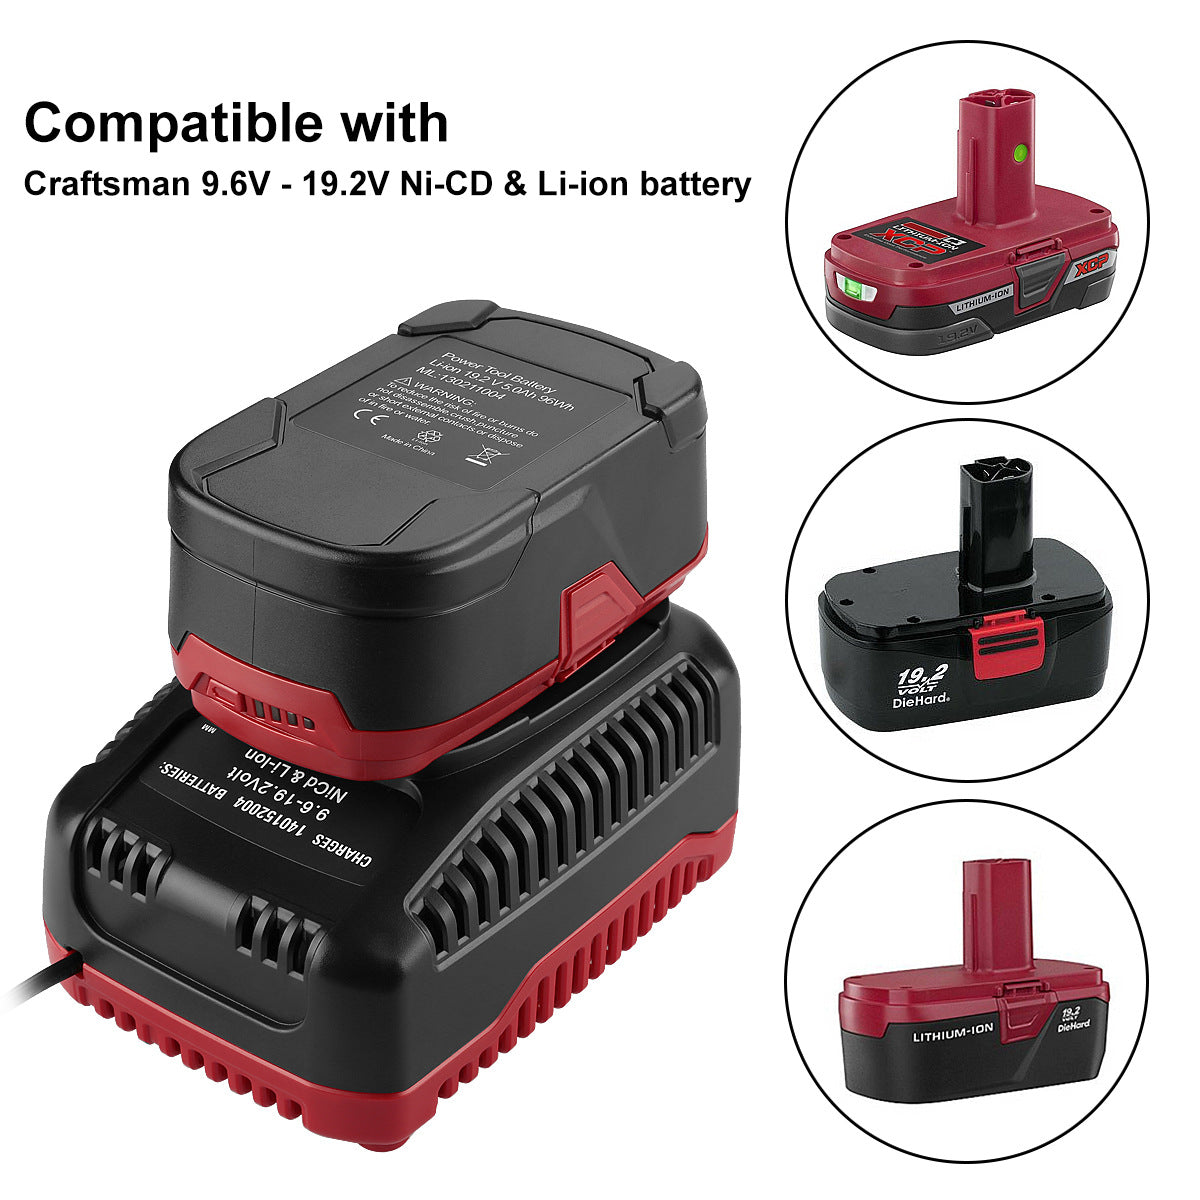 Carftsman 19.2V Charger Lithium Battery NiCd Battery Charger